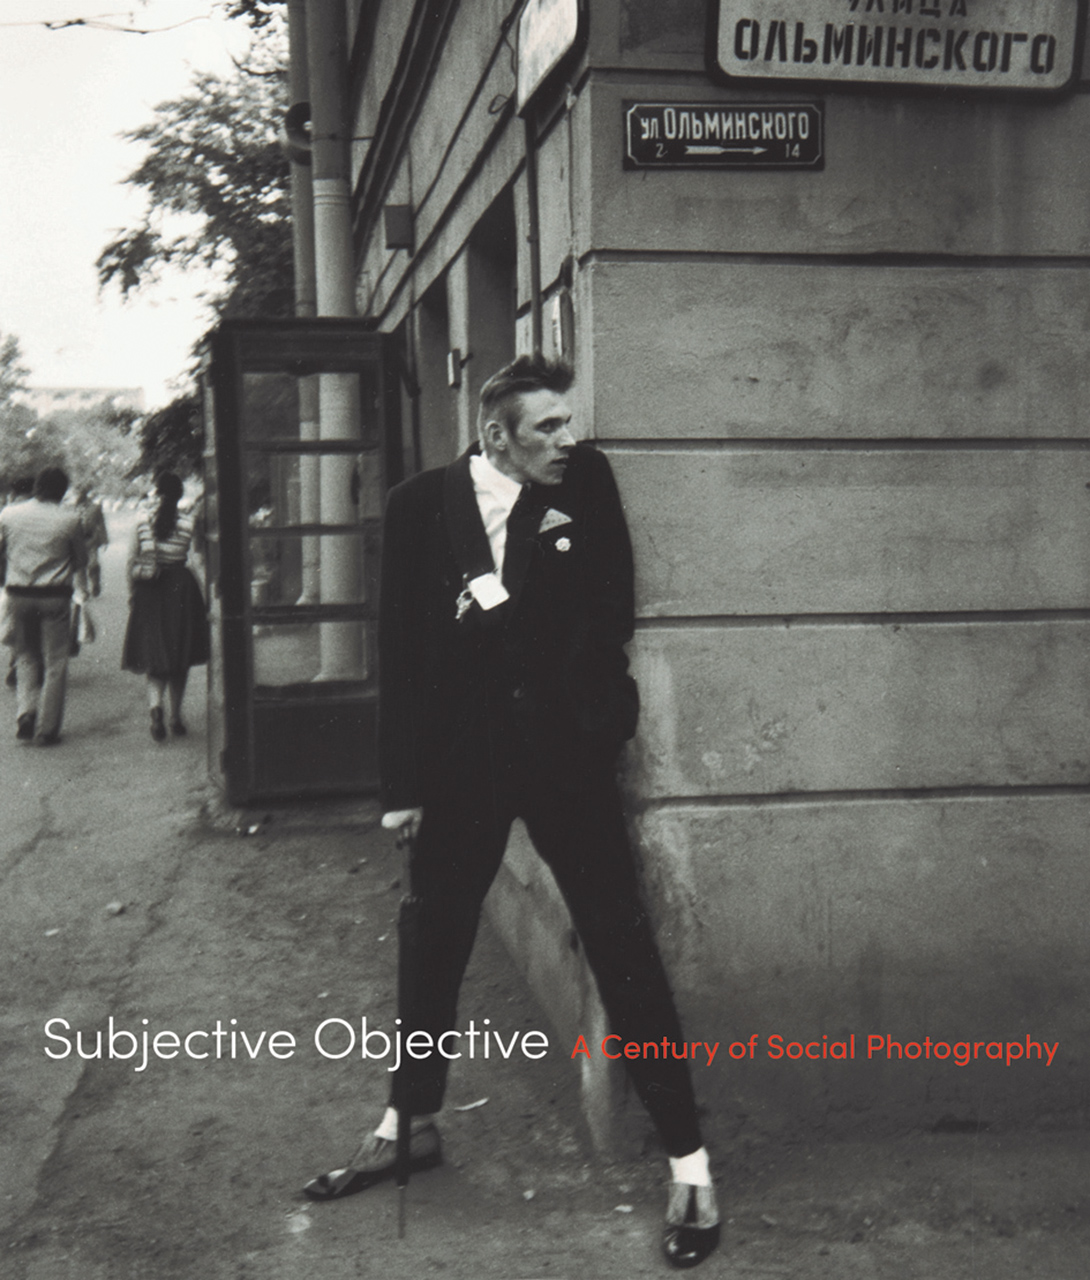 Subjective Objective: A Century of Social Photography